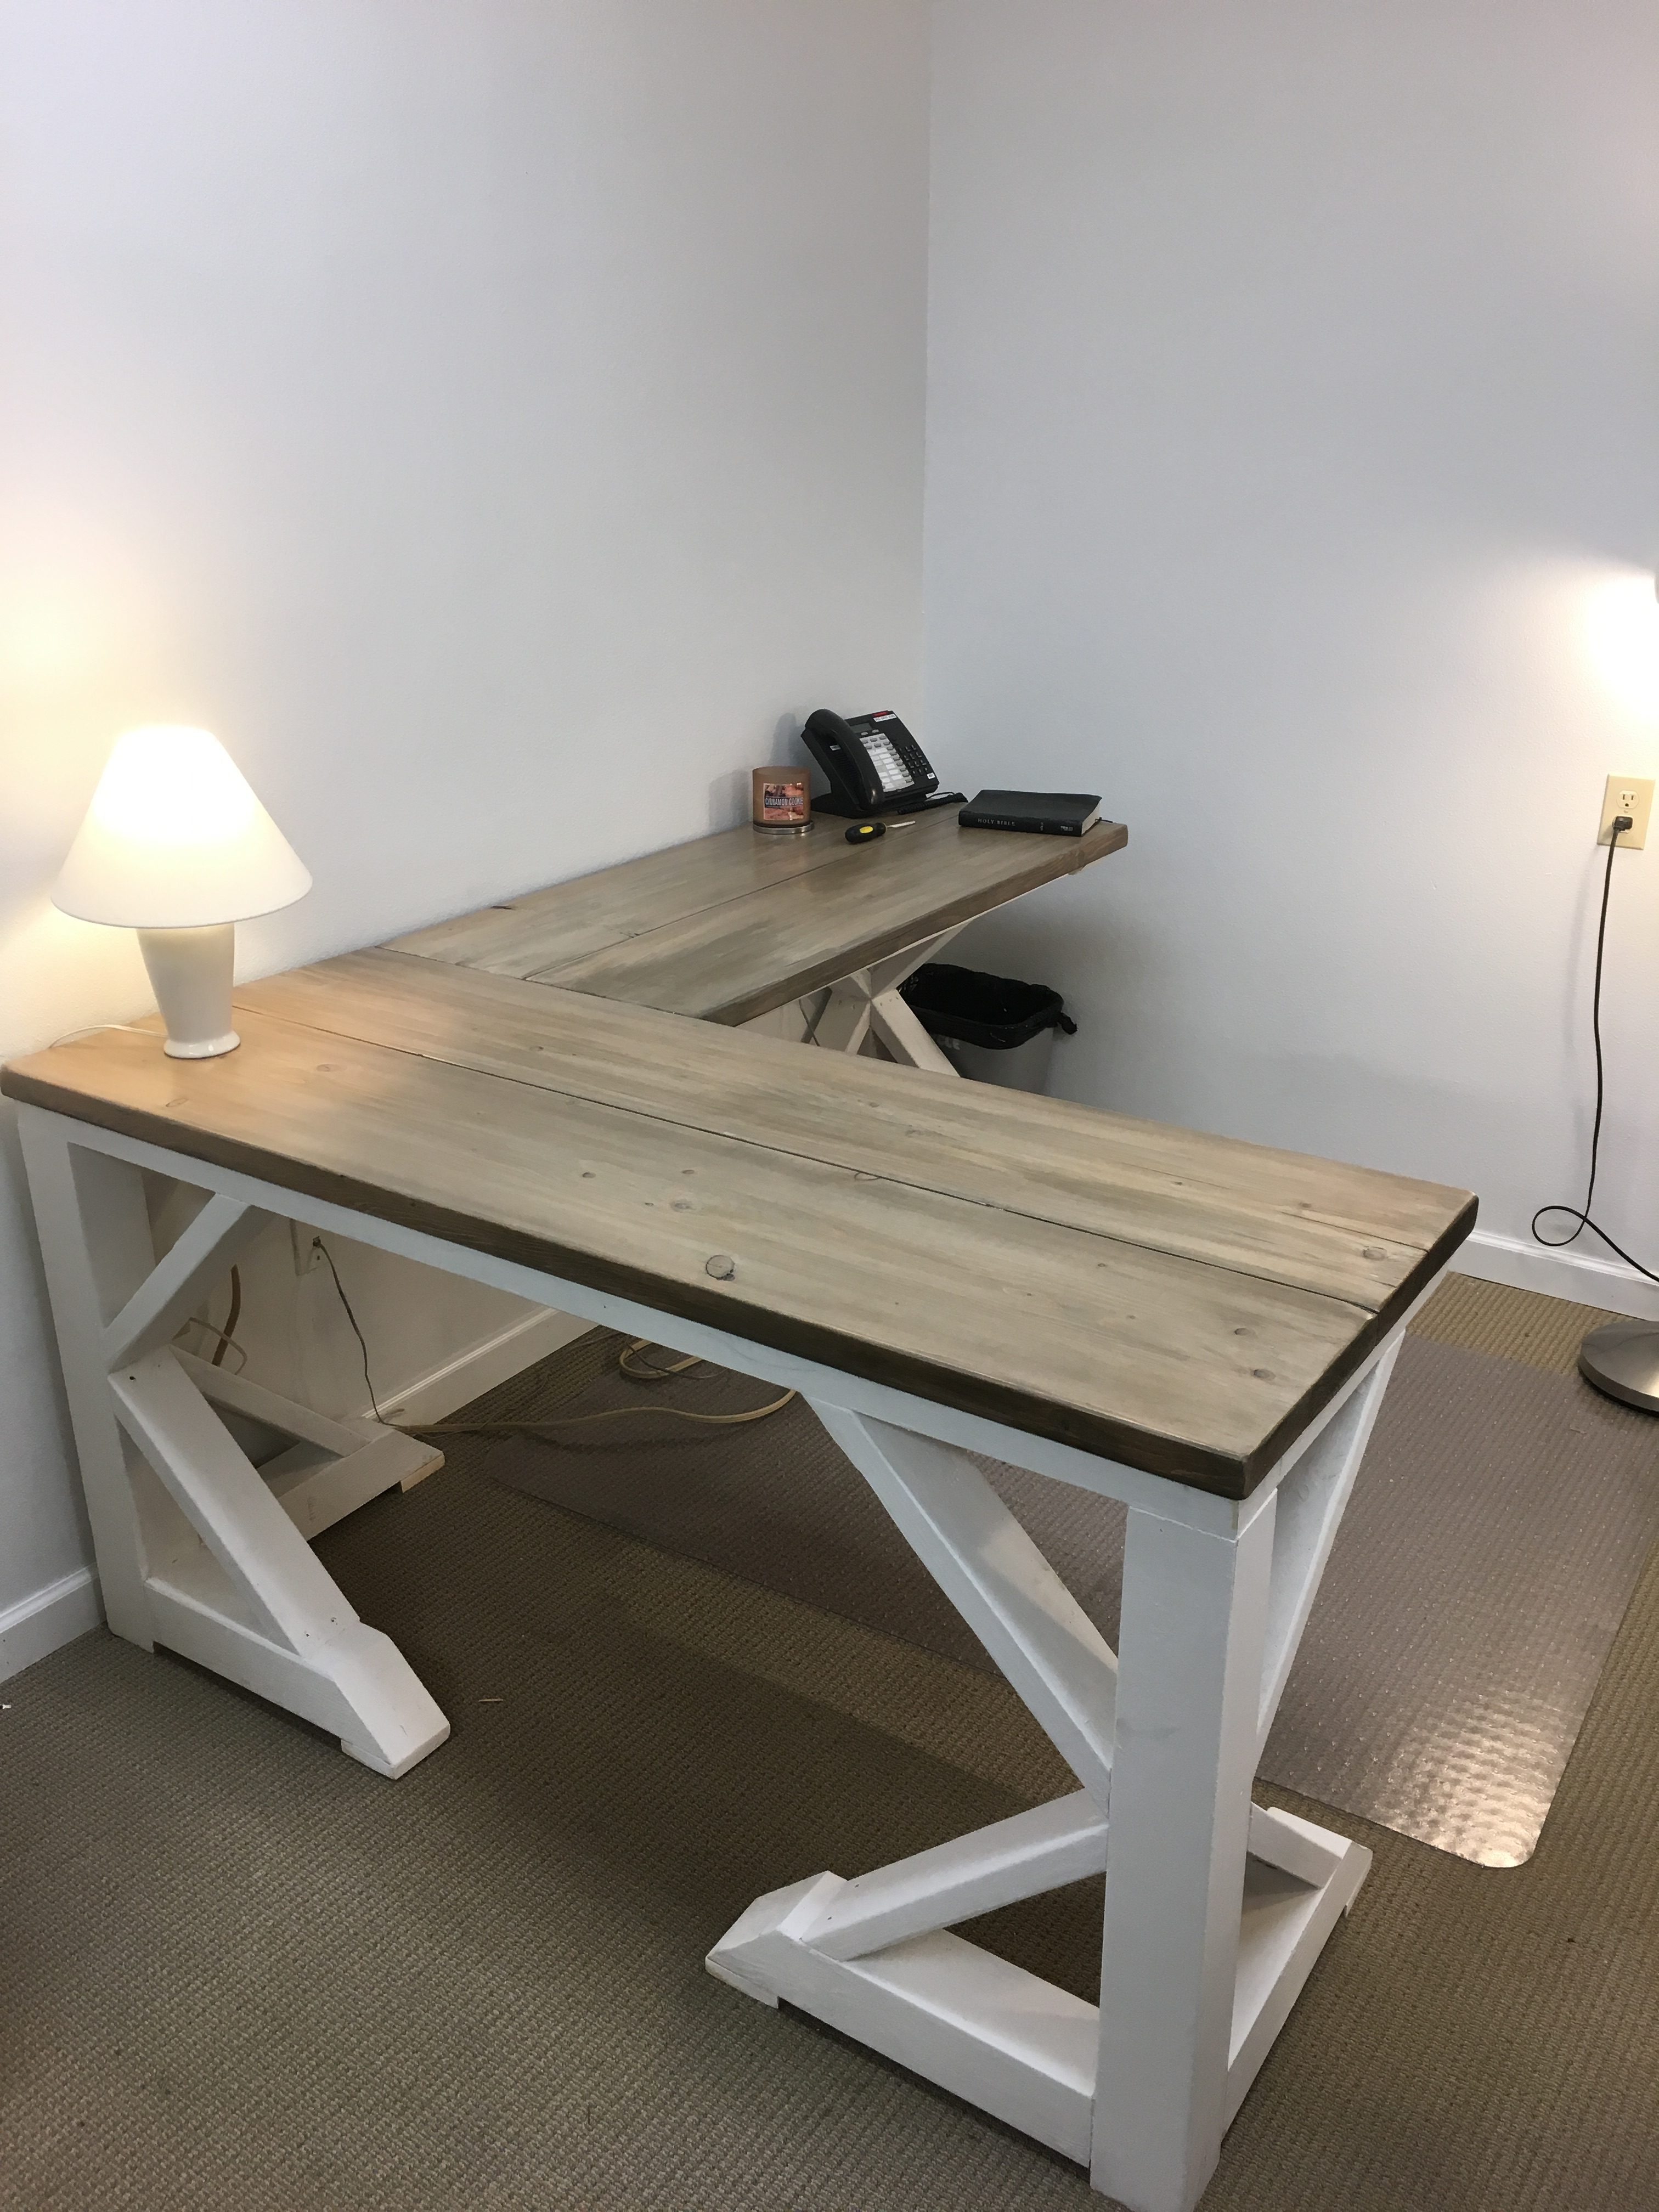 DIY Desks You Can Build on a Budget